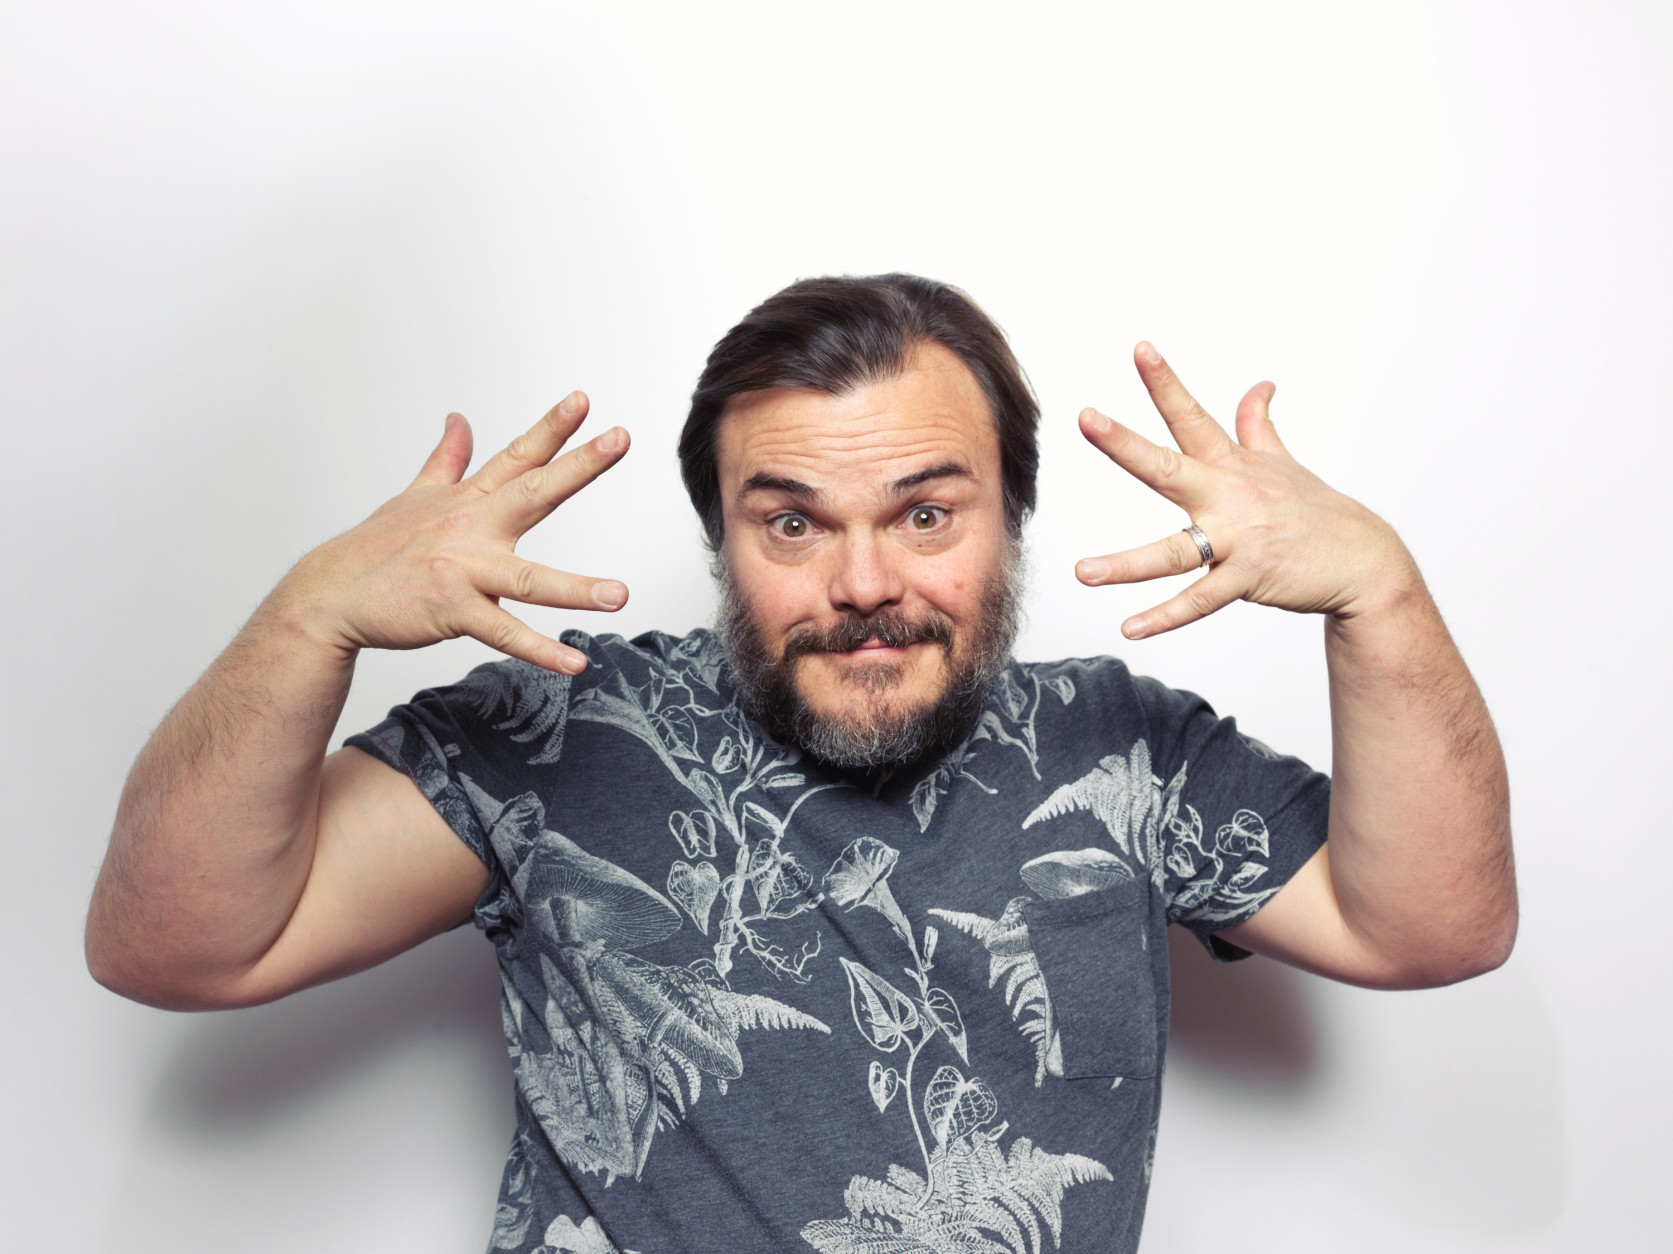 jack black 2016jack black mutant ninja turtles, jack black косметика, jack black умер, jack black game, jack black twitter, jack black виски, jack black movies, jack black 2016, jack black lip balm, jack black фото, jack black kung fu panda, jack black 2017, jack black die antwoord, jack black игра, jack black группа, jack black gif, jack black music, jack black on disco fever, jack black wiki, jack black актер